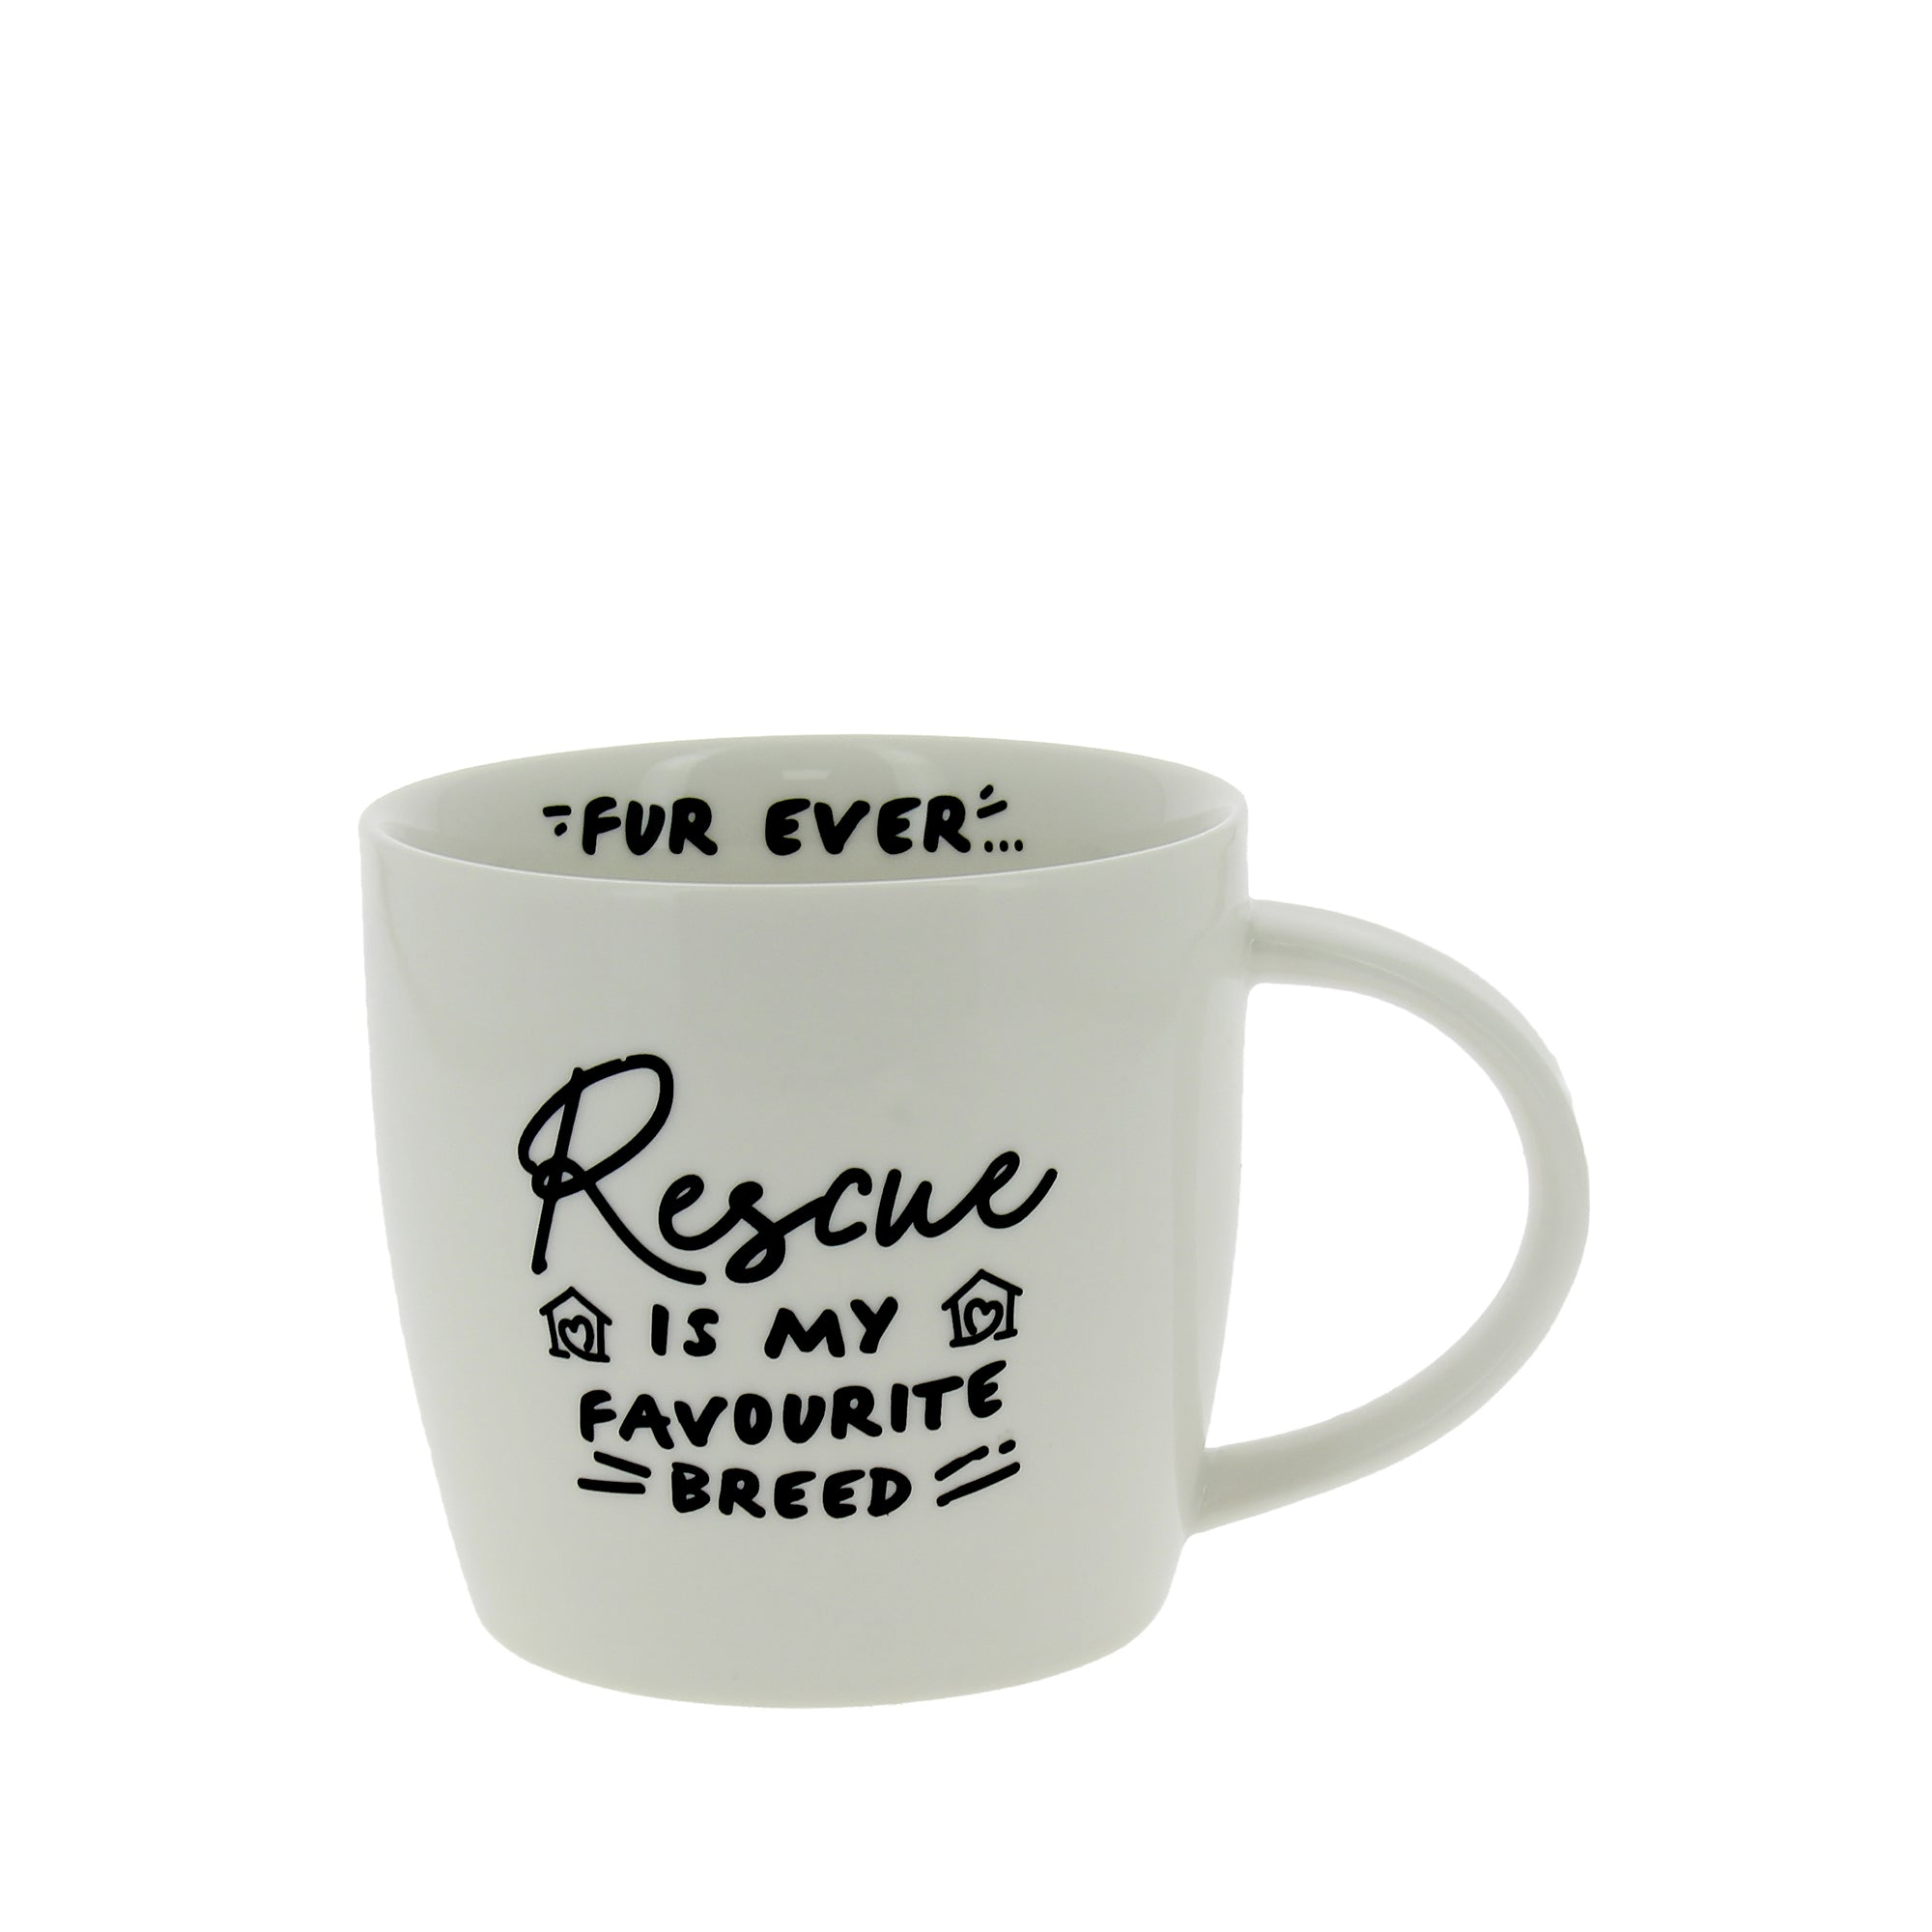 Best in Show - 'Rescue is my favourite breed' Mug